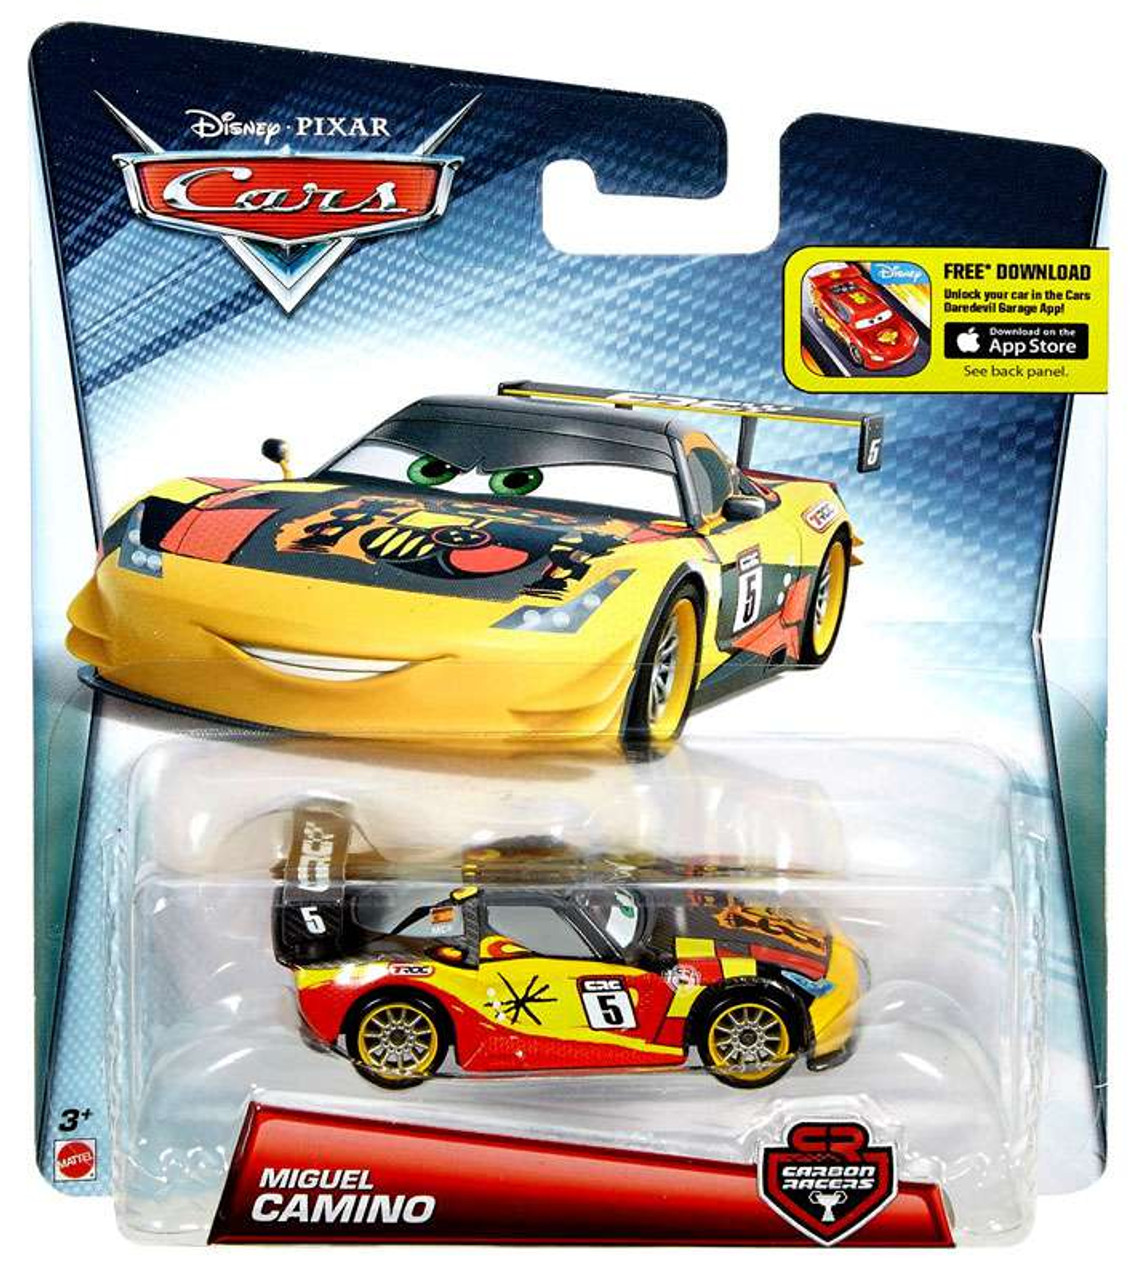 Cars 1 And 2 Toys : Disney cars carbon racers miguel camino diecast car